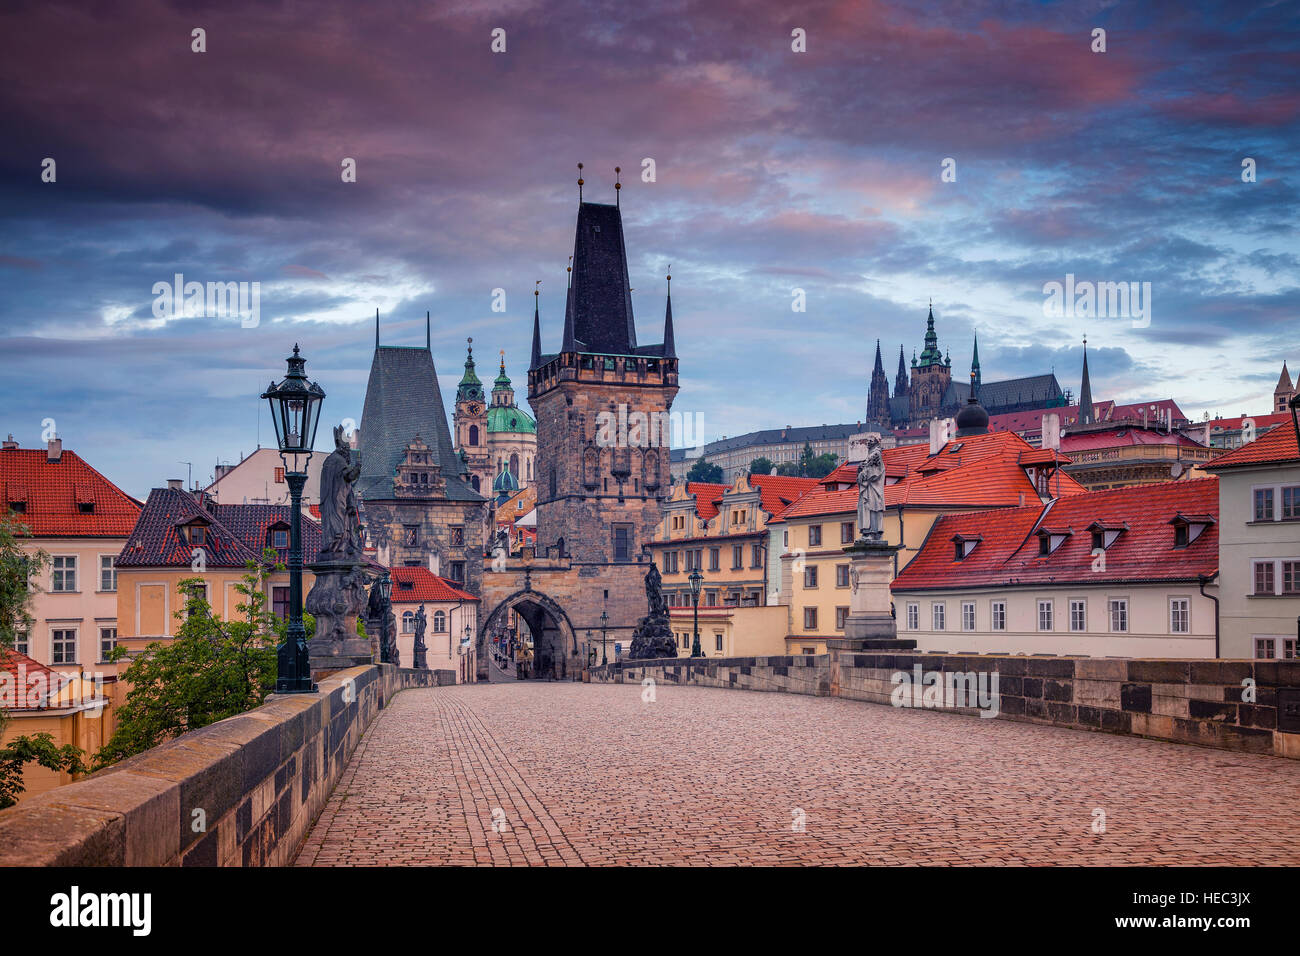 Charles Bridge, Prague. Cityscape image of Charles Bridge in Prague, Czech Republic during sunrise. Stock Photo